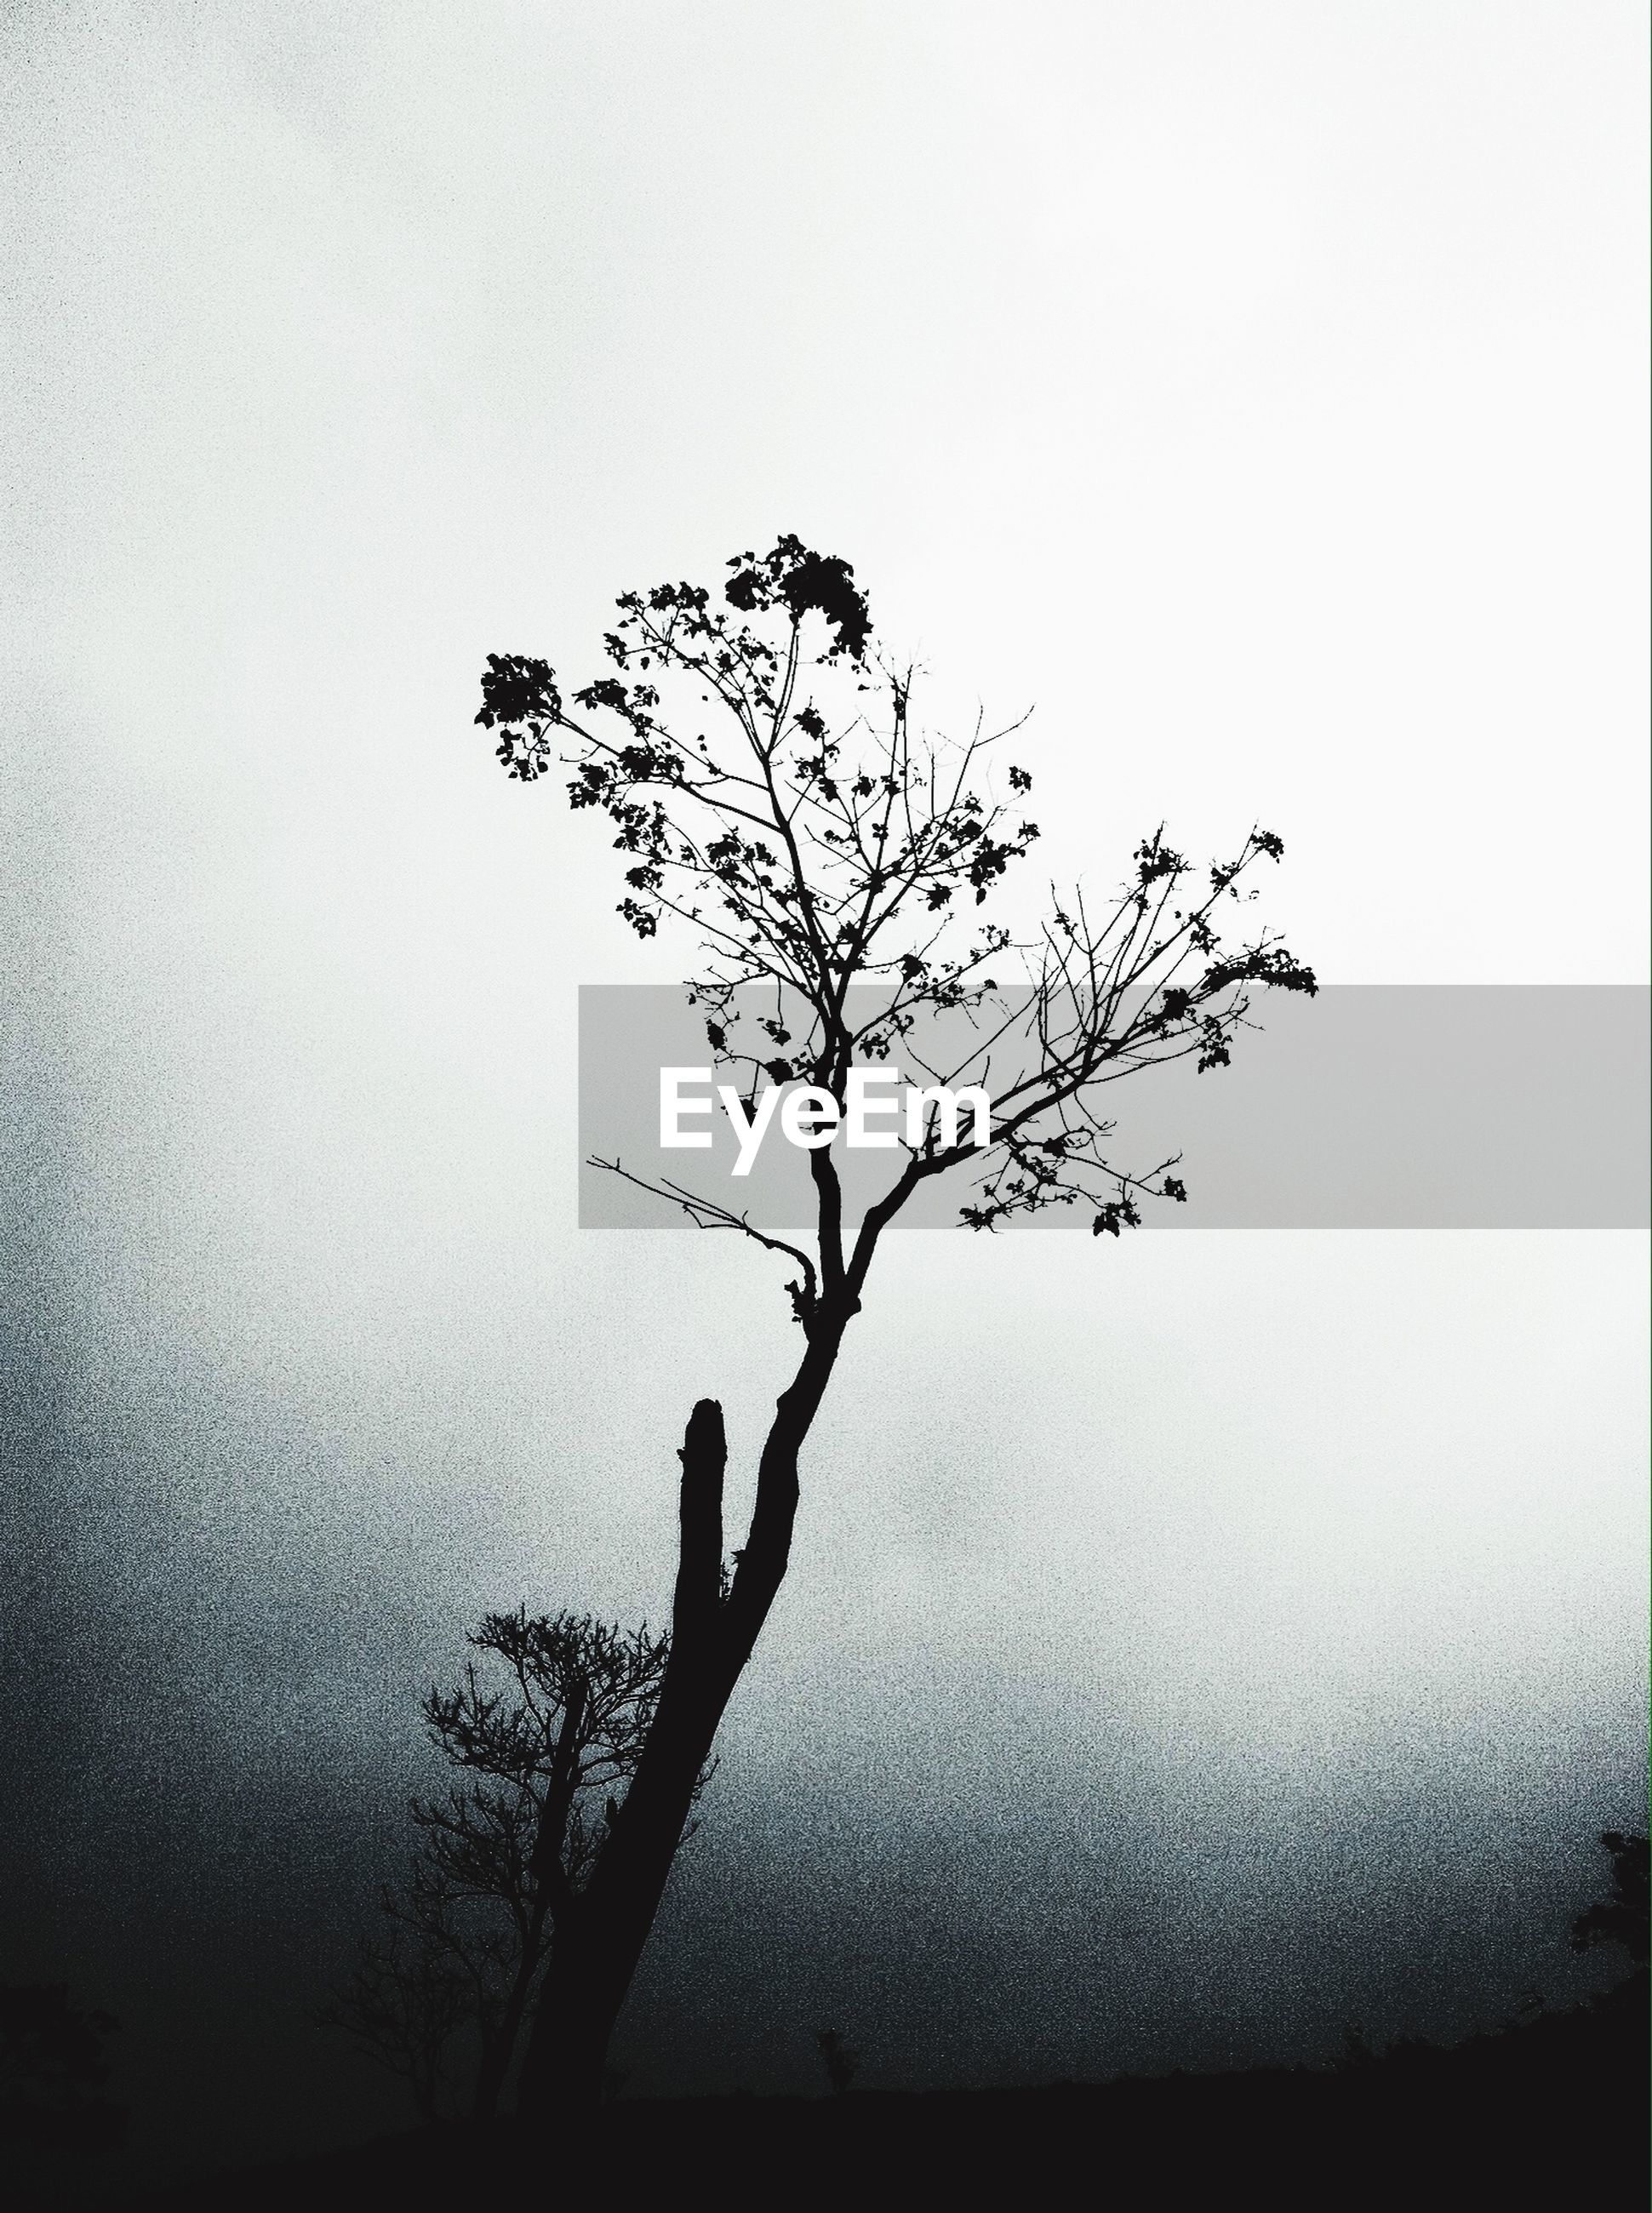 tree, branch, bare tree, clear sky, silhouette, tranquility, nature, growth, tree trunk, copy space, single tree, beauty in nature, no people, tranquil scene, outdoors, day, sky, wall - building feature, dusk